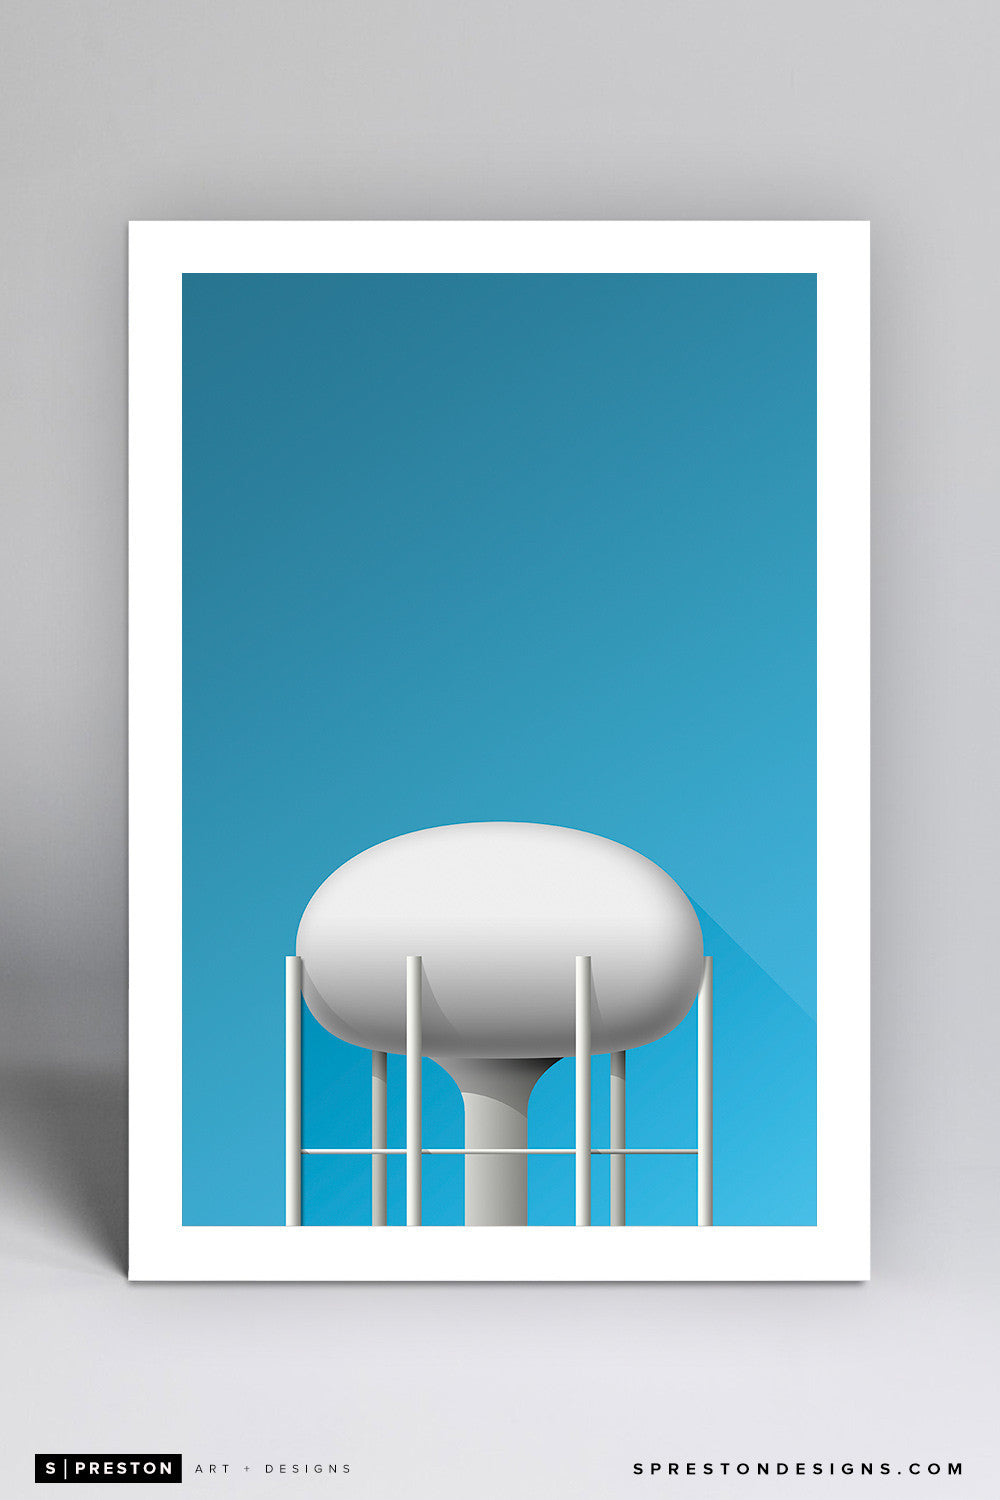 Minimalist Kinnick Stadium Art Print - University of Iowa - S. Preston Art + Designs